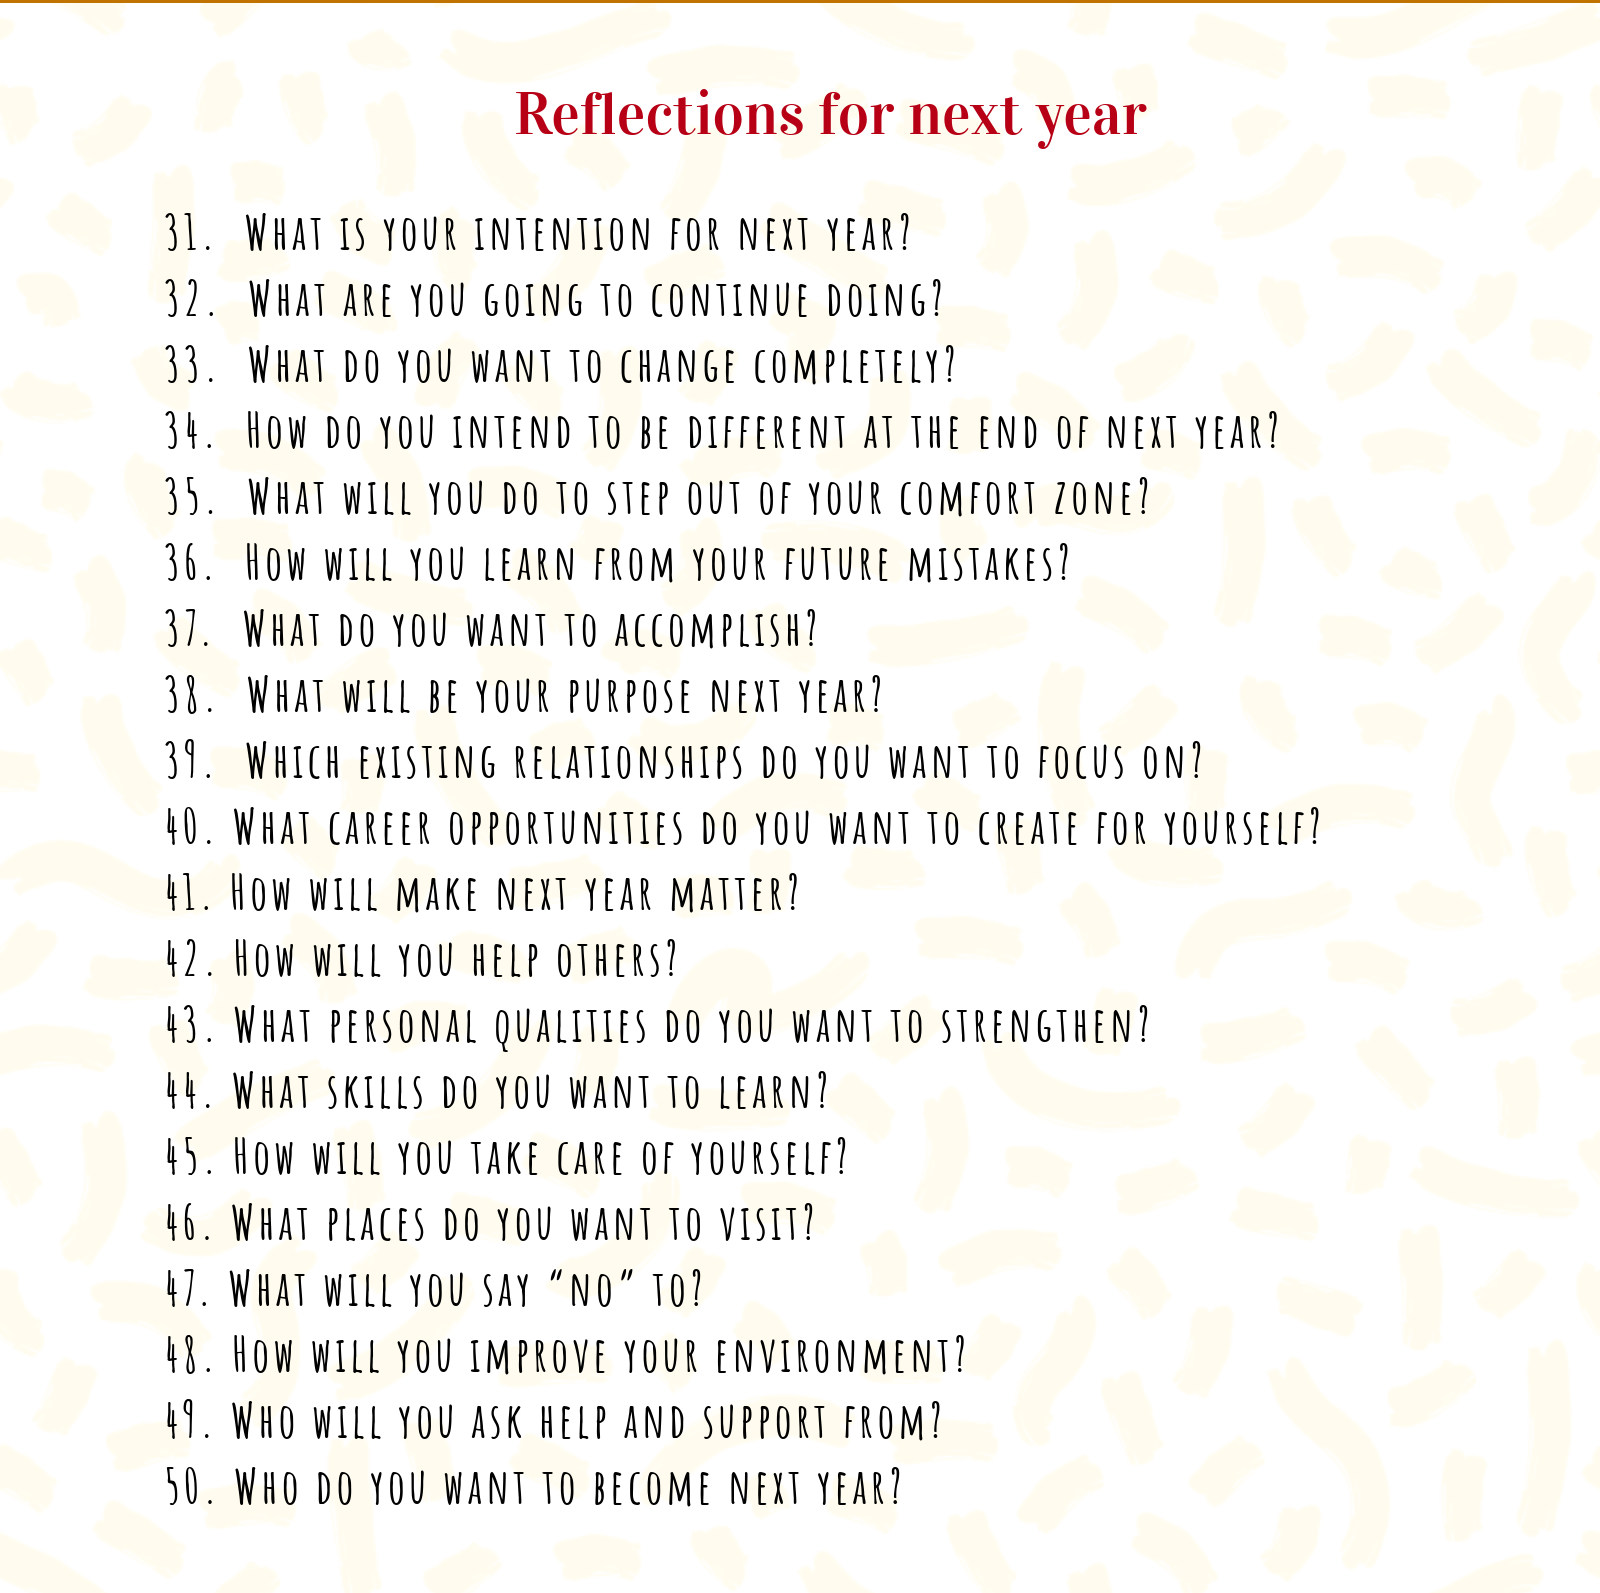 questions to reflect next year